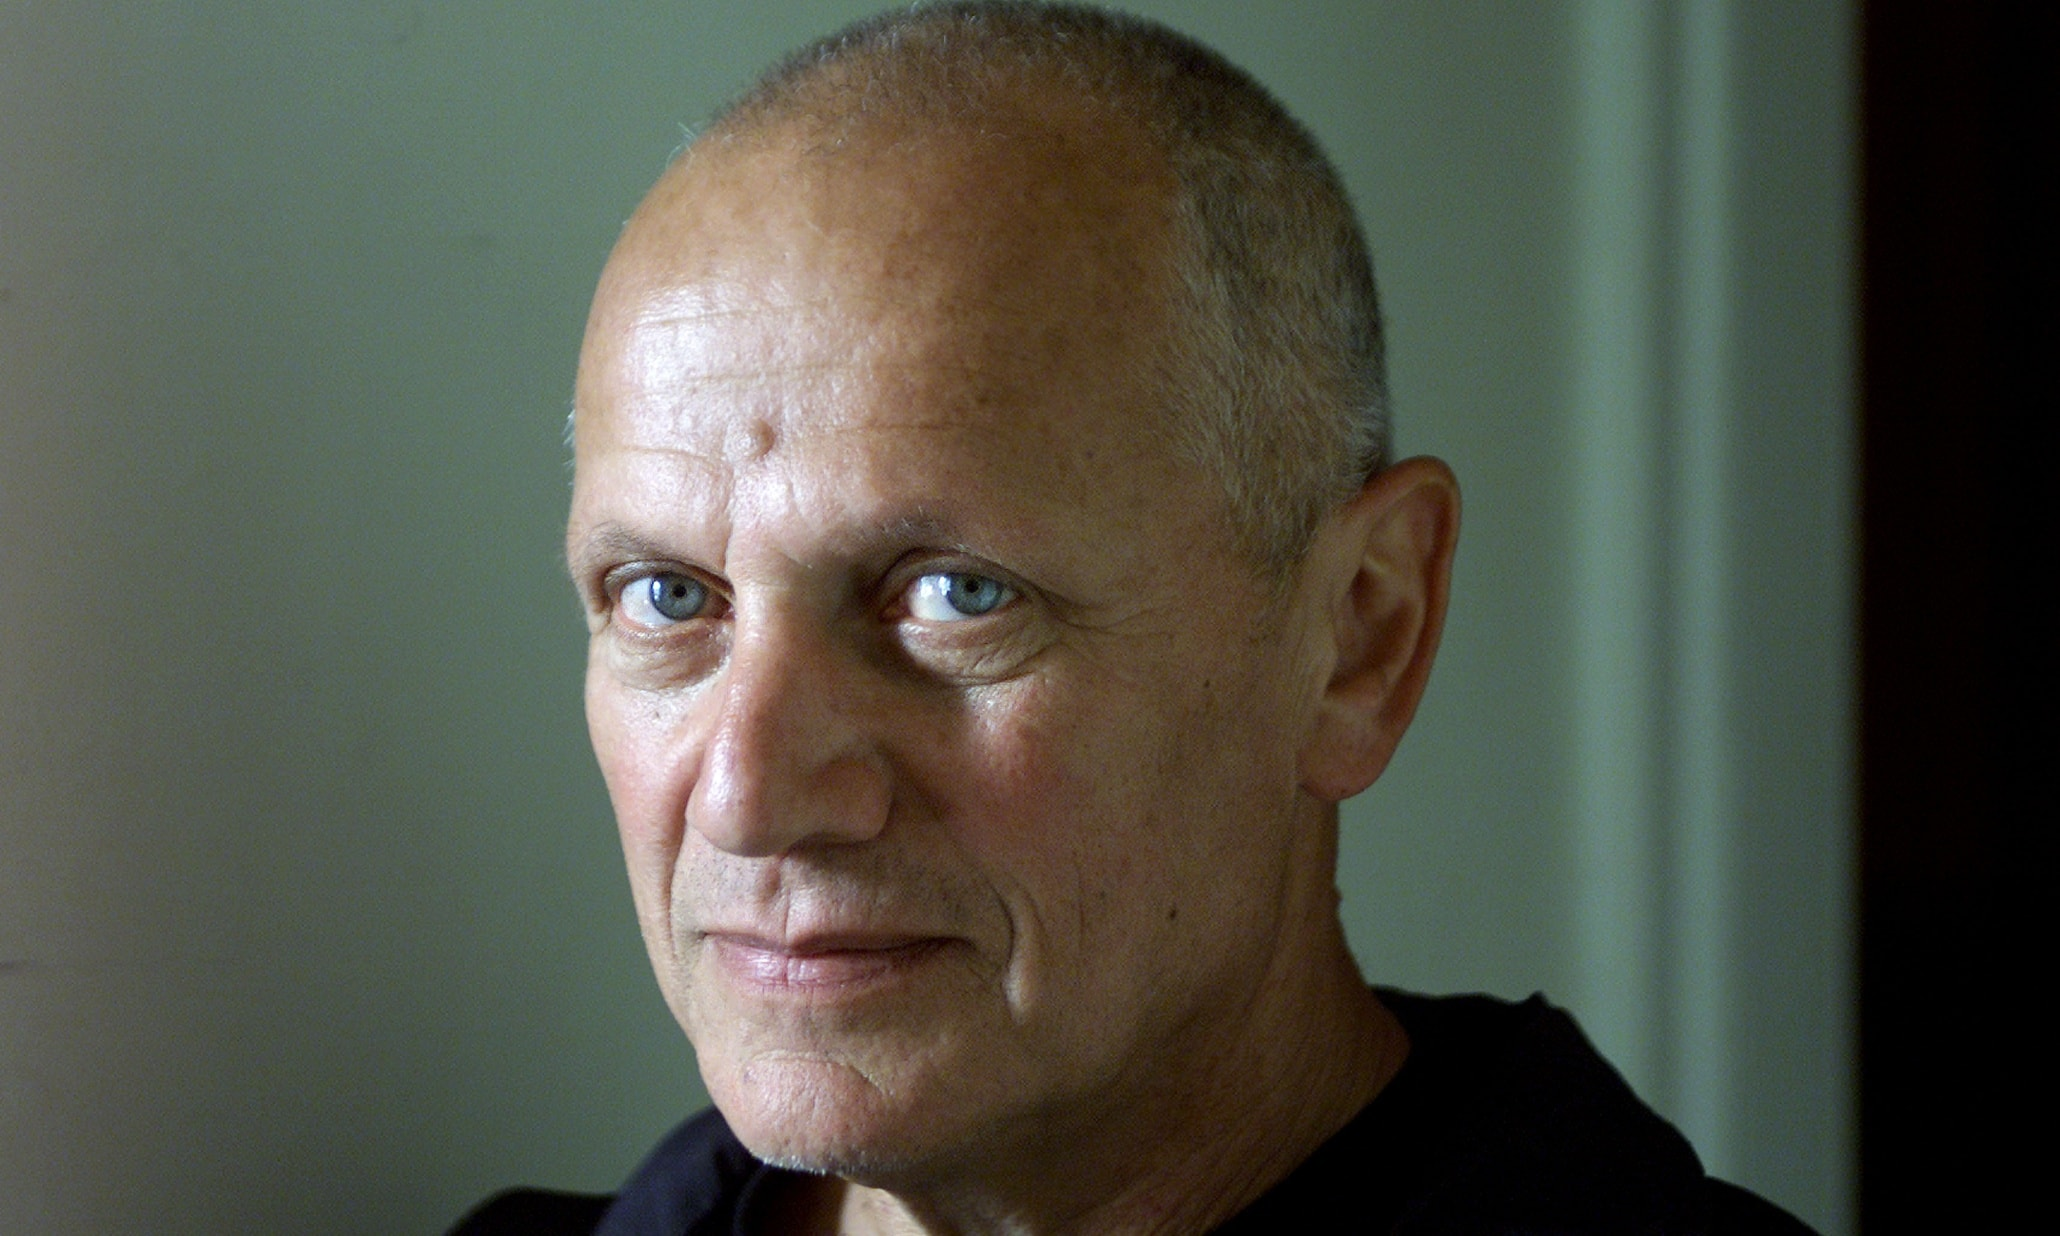 Steven Berkoff HQ wallpapers